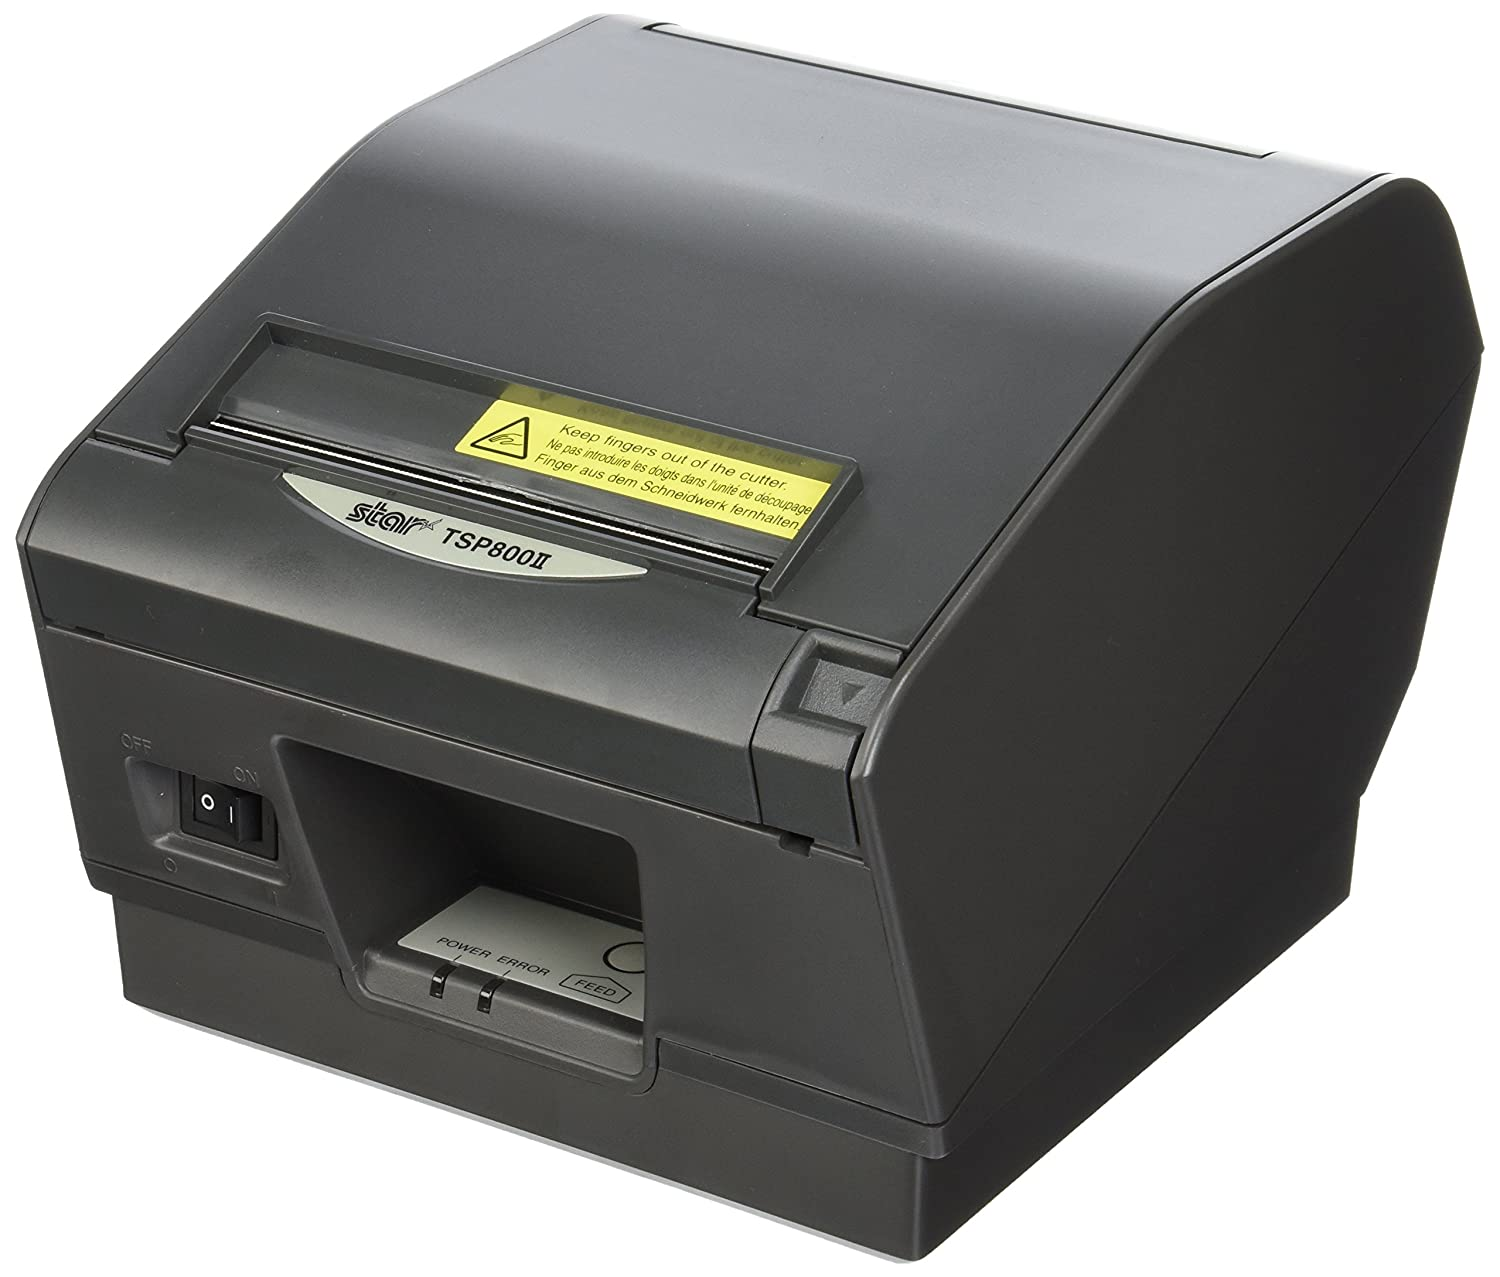 Ultra High Speed thermal receipt printer  with Ethernet or Bluetooth interface, wide paper format (4.4-inch) and auto cutter.